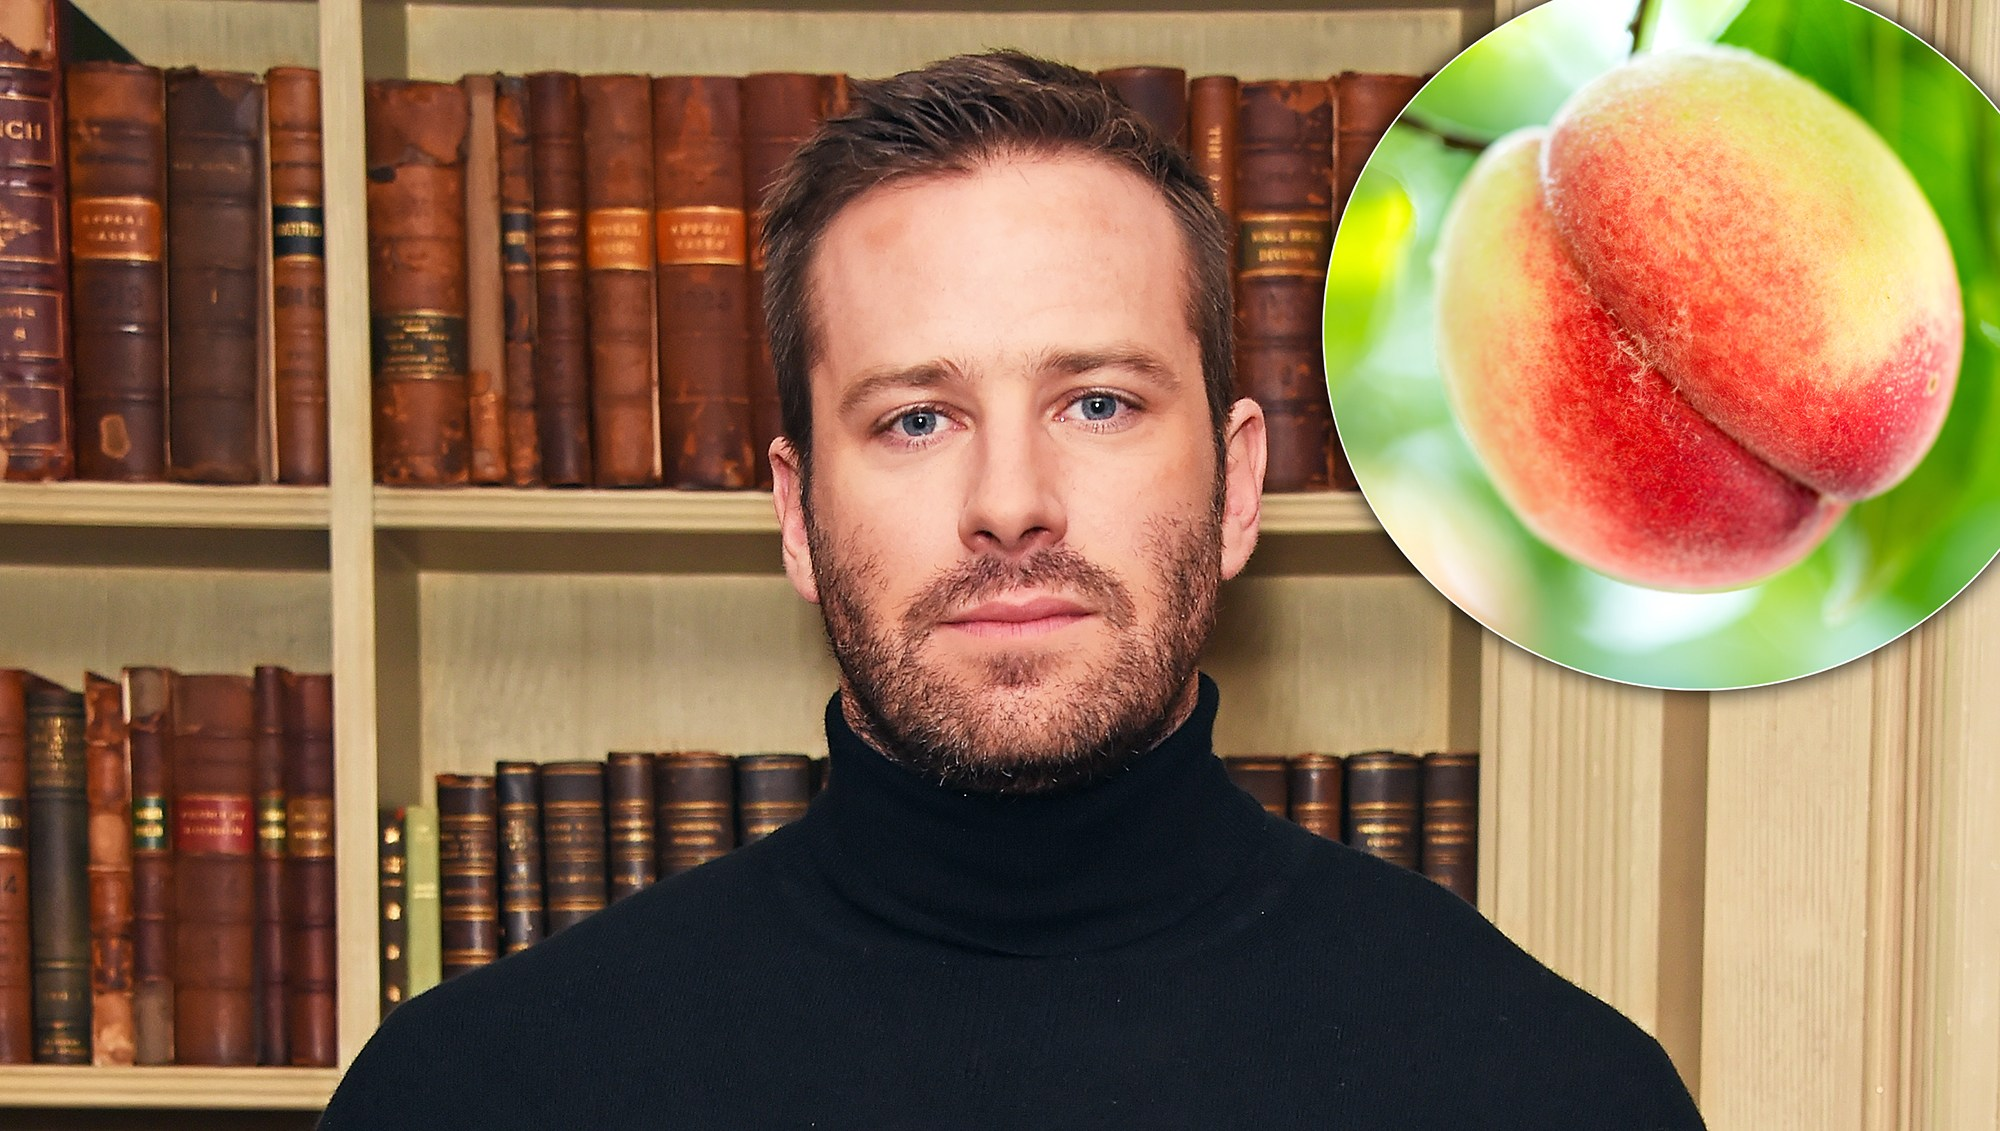 People Won't Stop Giving Armie Hammer Peaches After That 'Call Me By Your Name' Scene